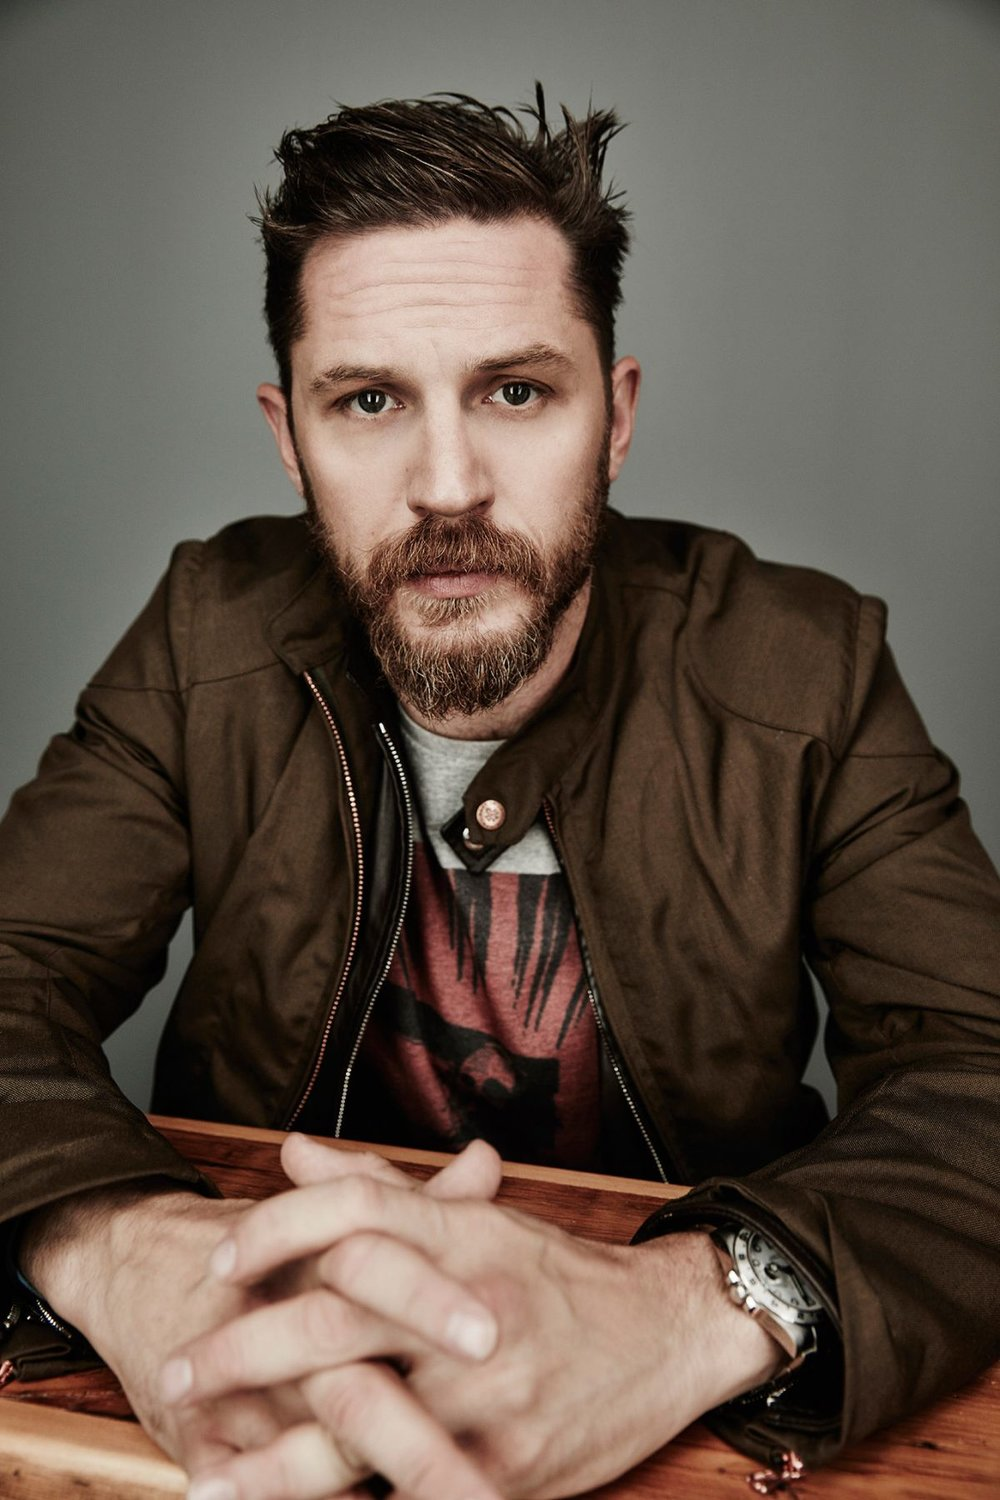 Tom-Hardy-2015-Toronto-Film-Festival-Photoshoot-tom-hardy-39213944-1200-1800.jpg